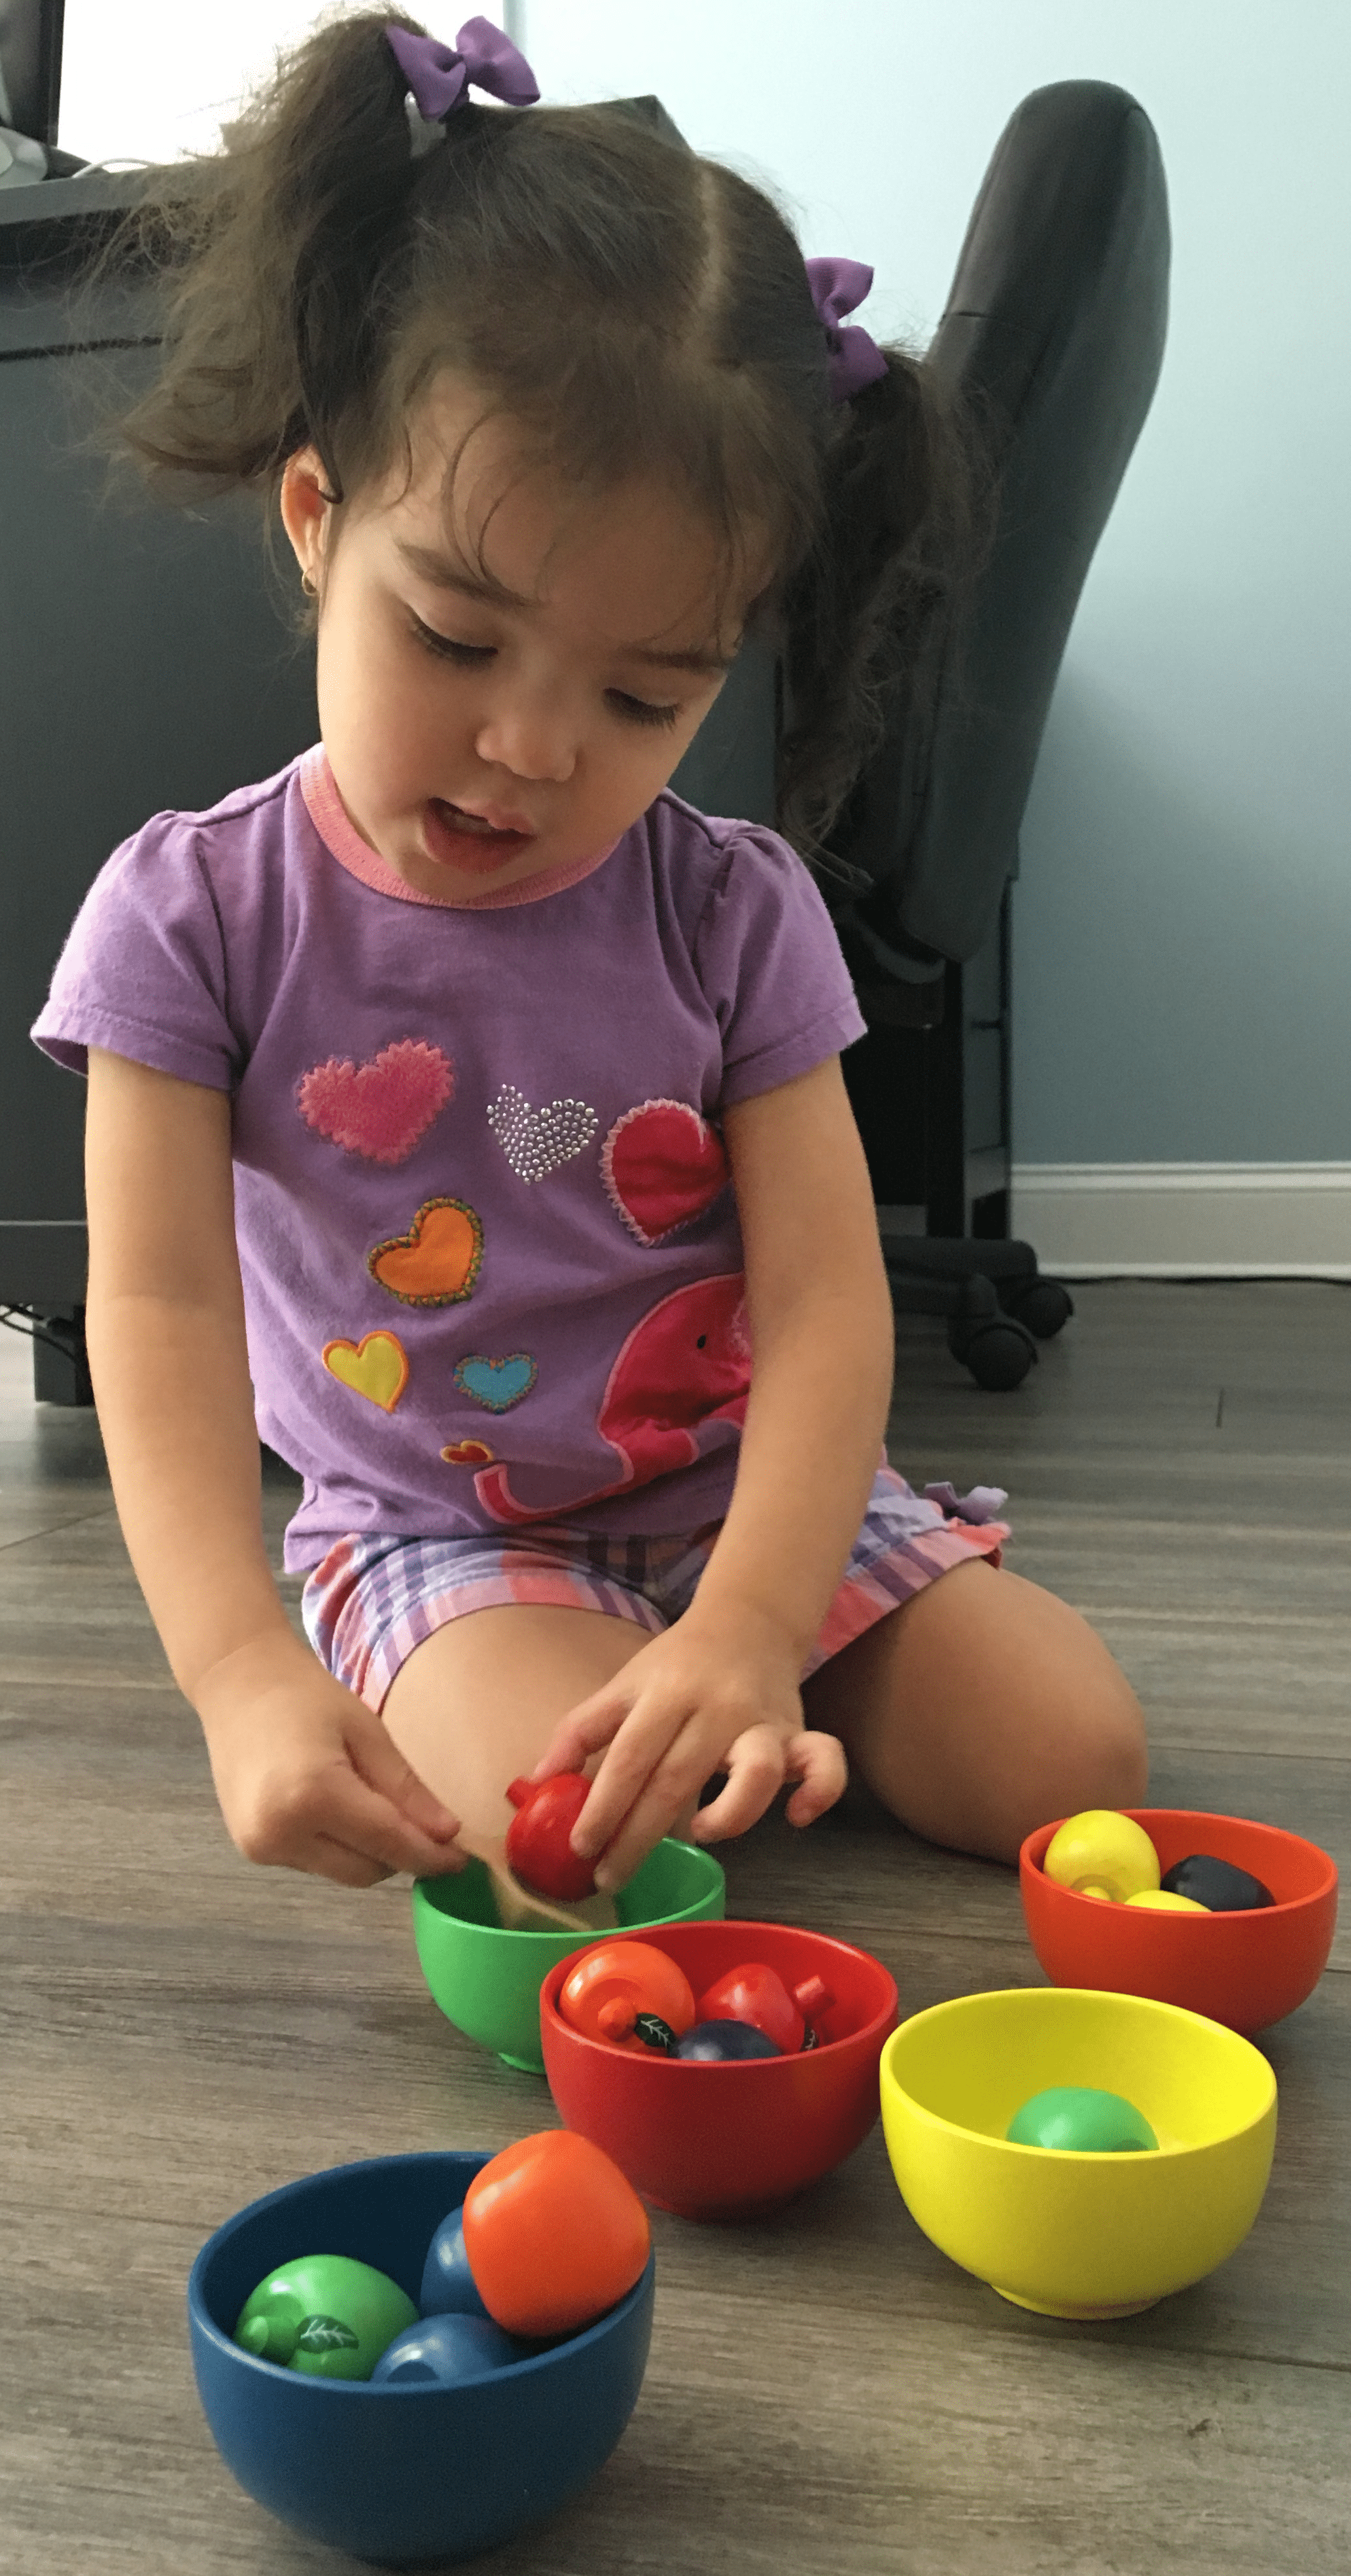 2 year old developmental milestones